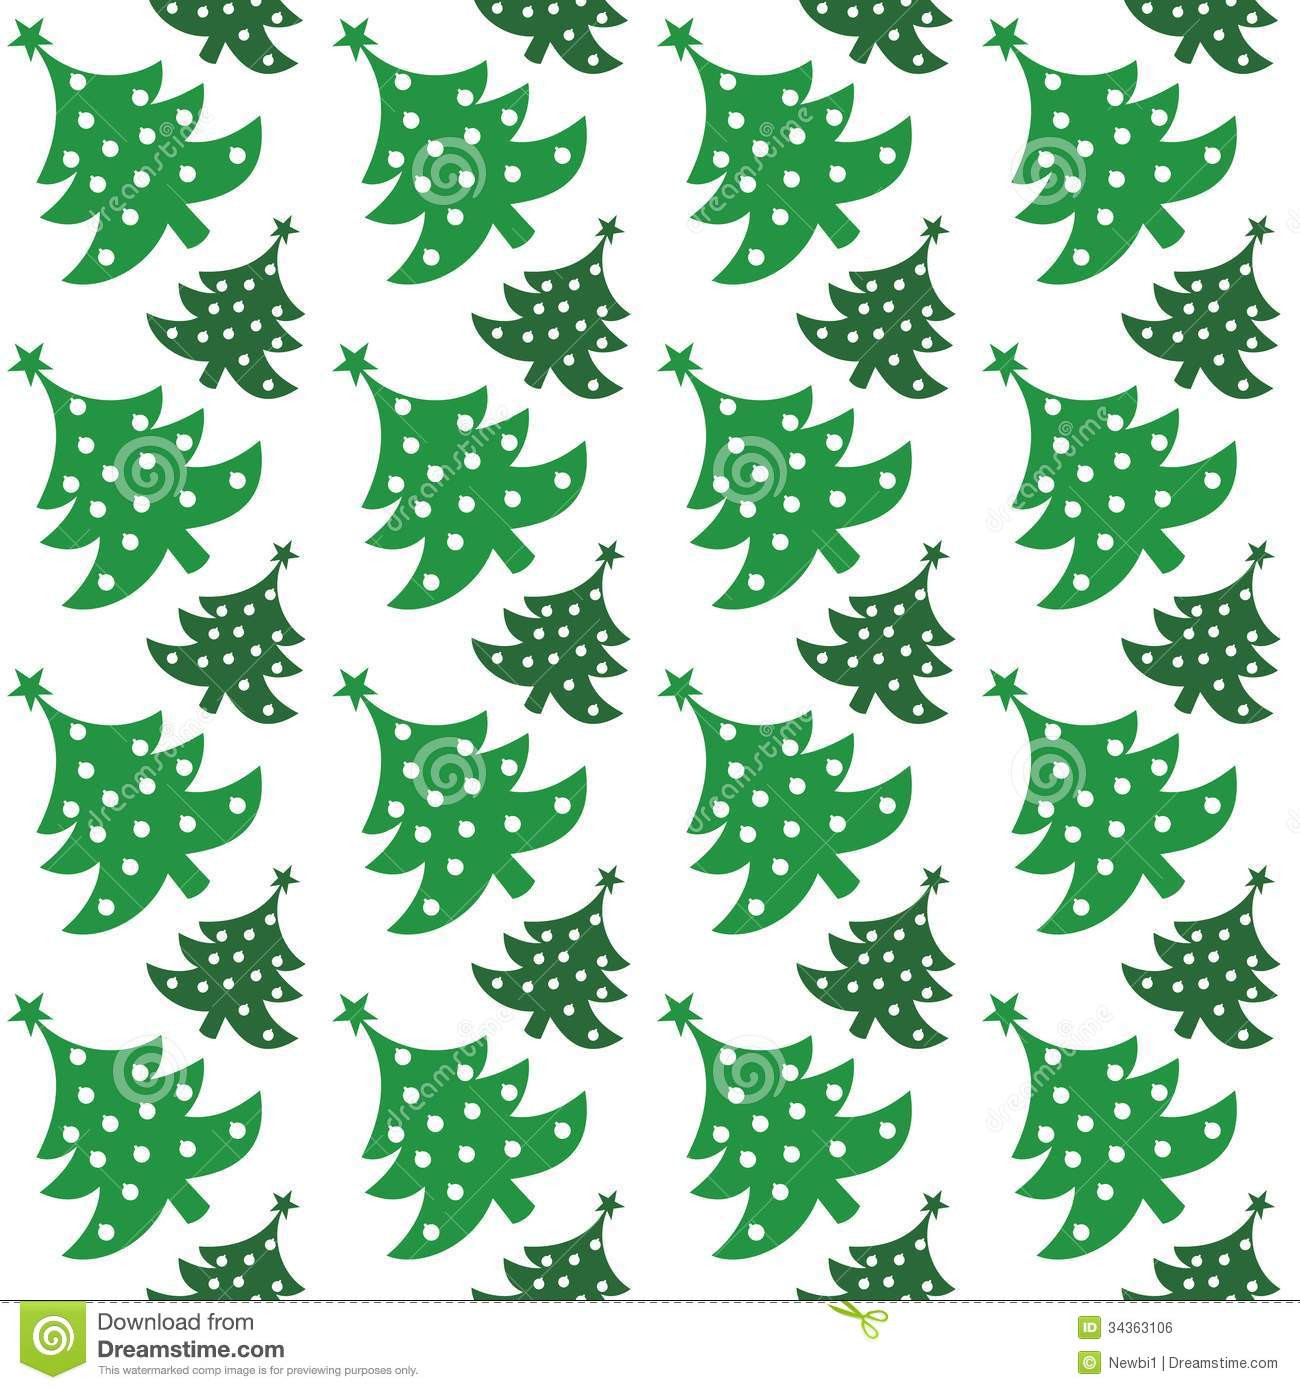 Christmas Tree Pattern Beautiful Christmas Tree Pattern Backgrounds – Happy Holidays Of Great 46 Images Christmas Tree Pattern